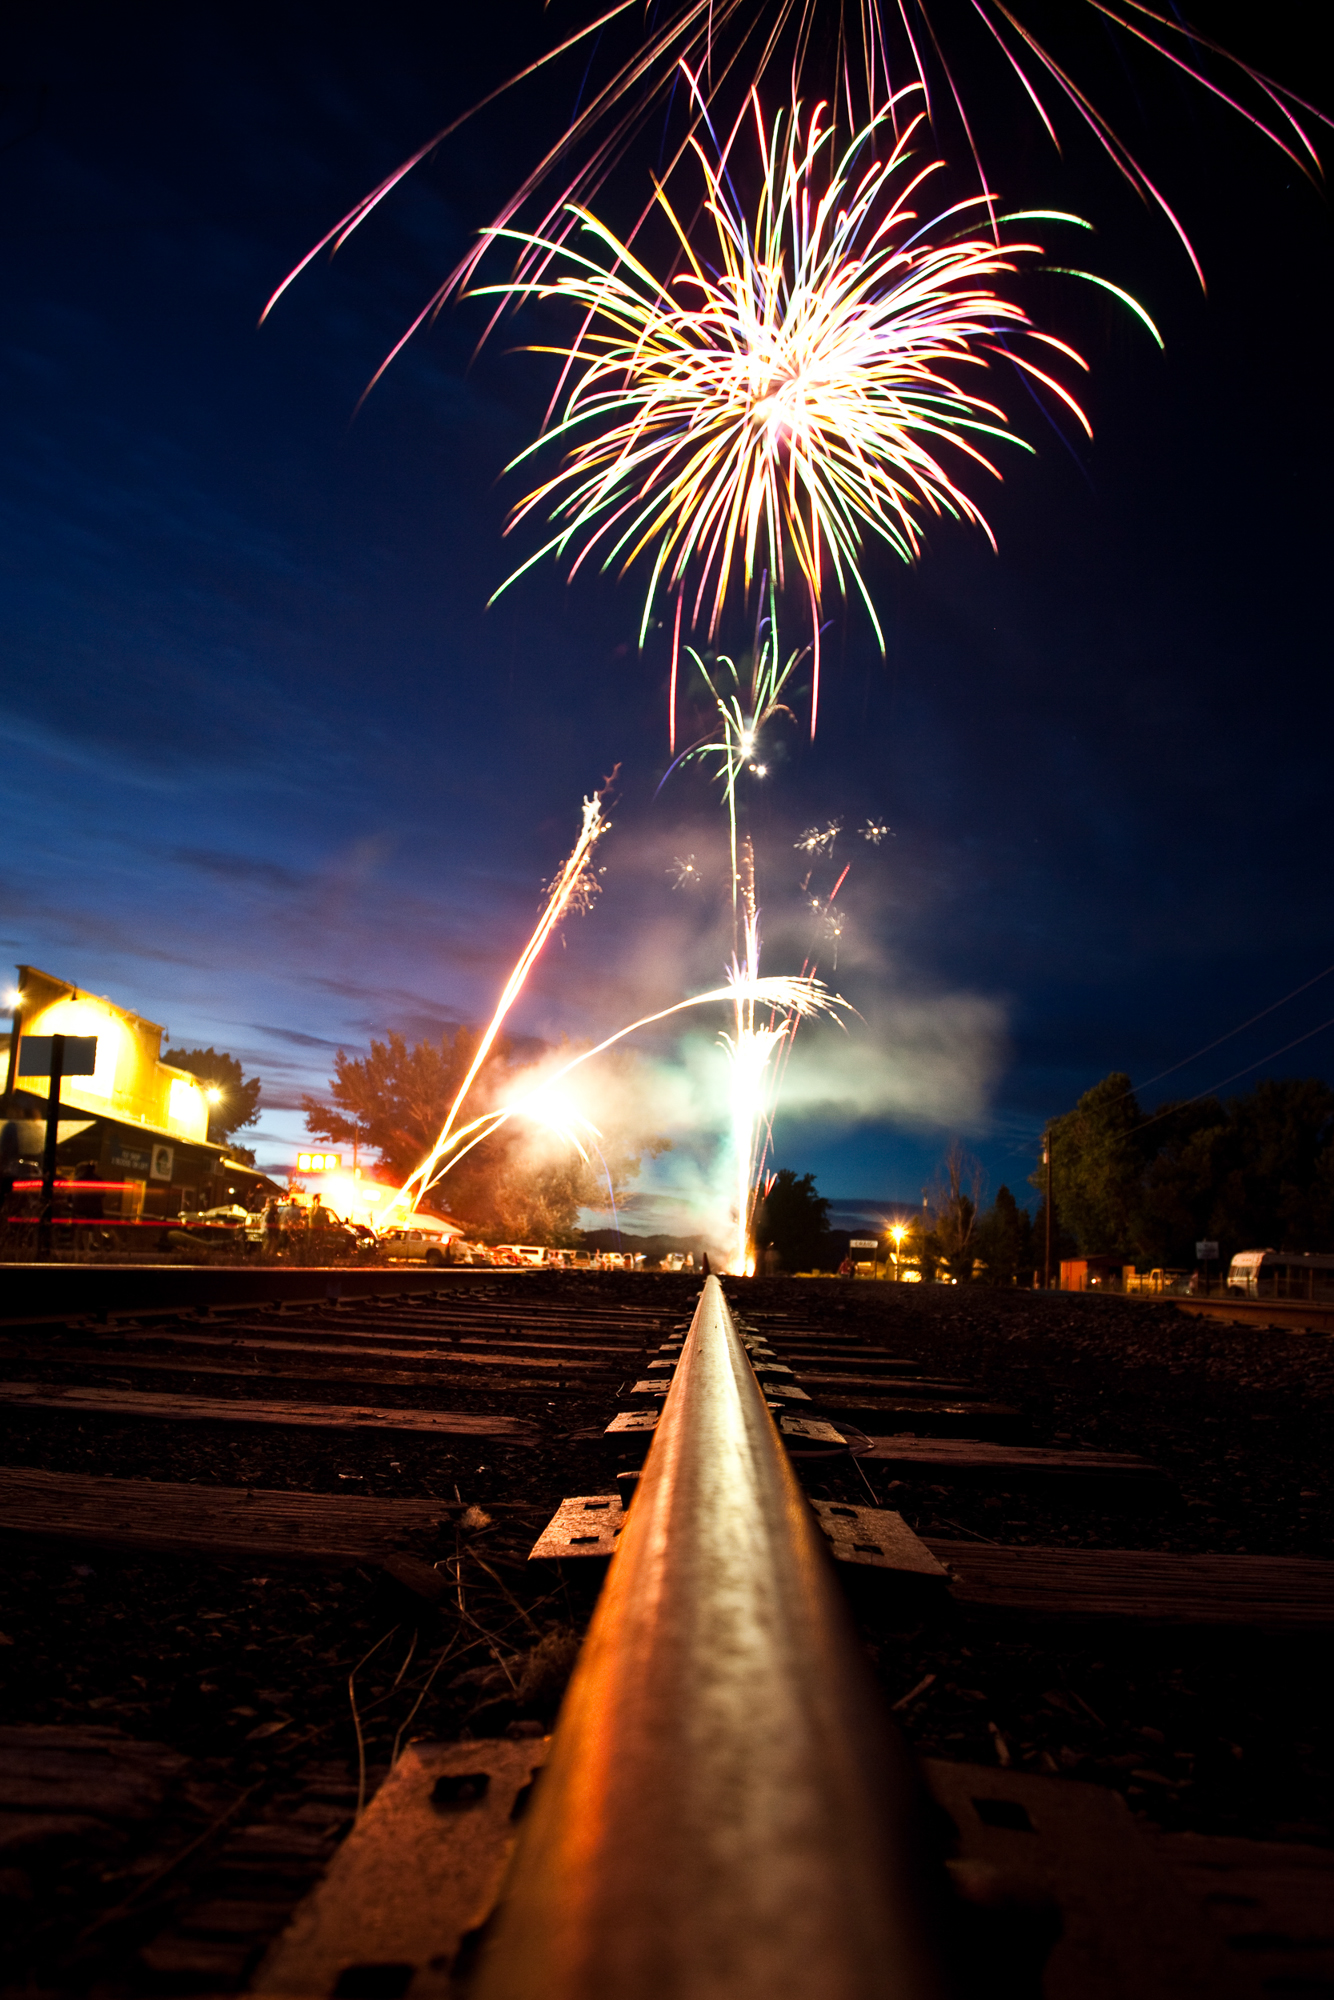 Looking down the tracks. Come dark, well after 11PM, the fireworks begin in celebration of Independence Day. Looking down the abandoned train tracks running through town to Joe's Bar, the scene of the action, shadows can be seen running in the dim light from the fireworks.